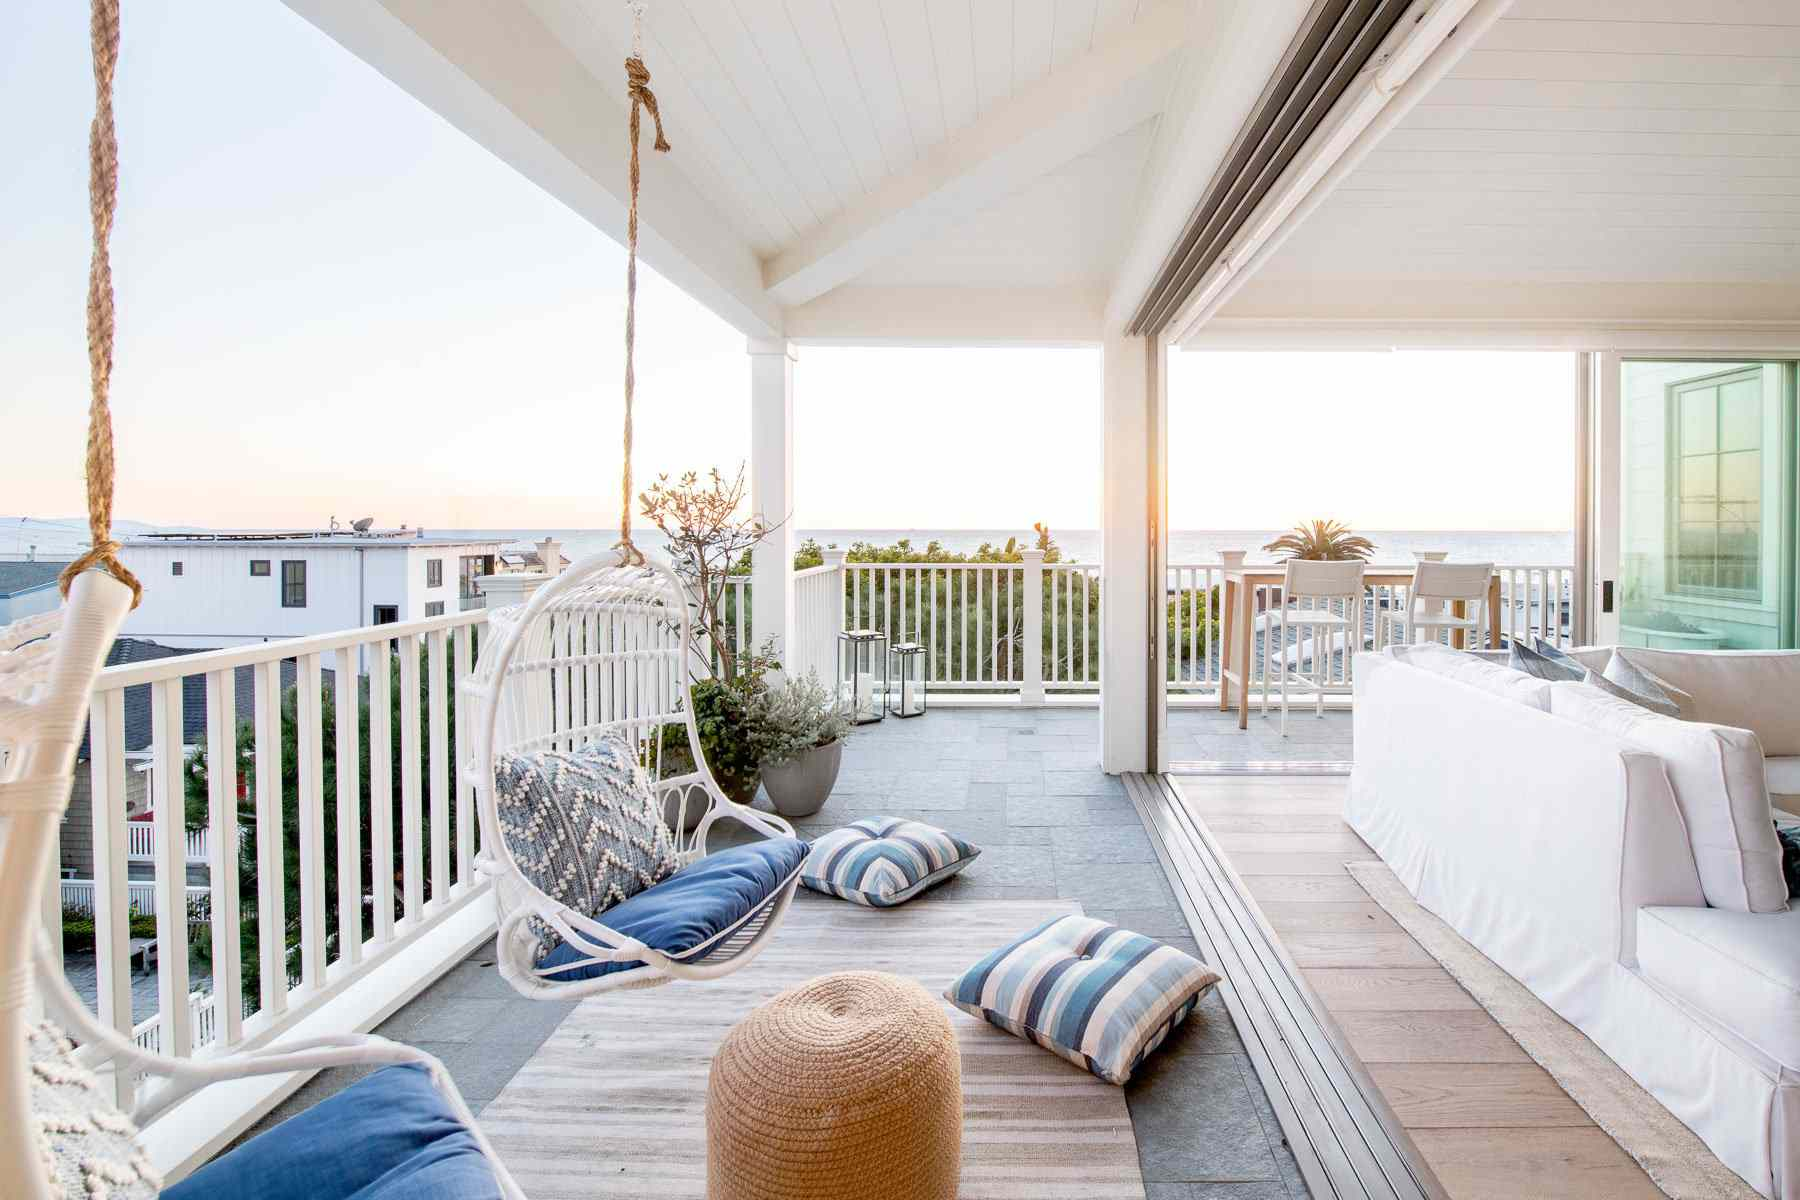 A large outdoor deck with two porch swings and a couch